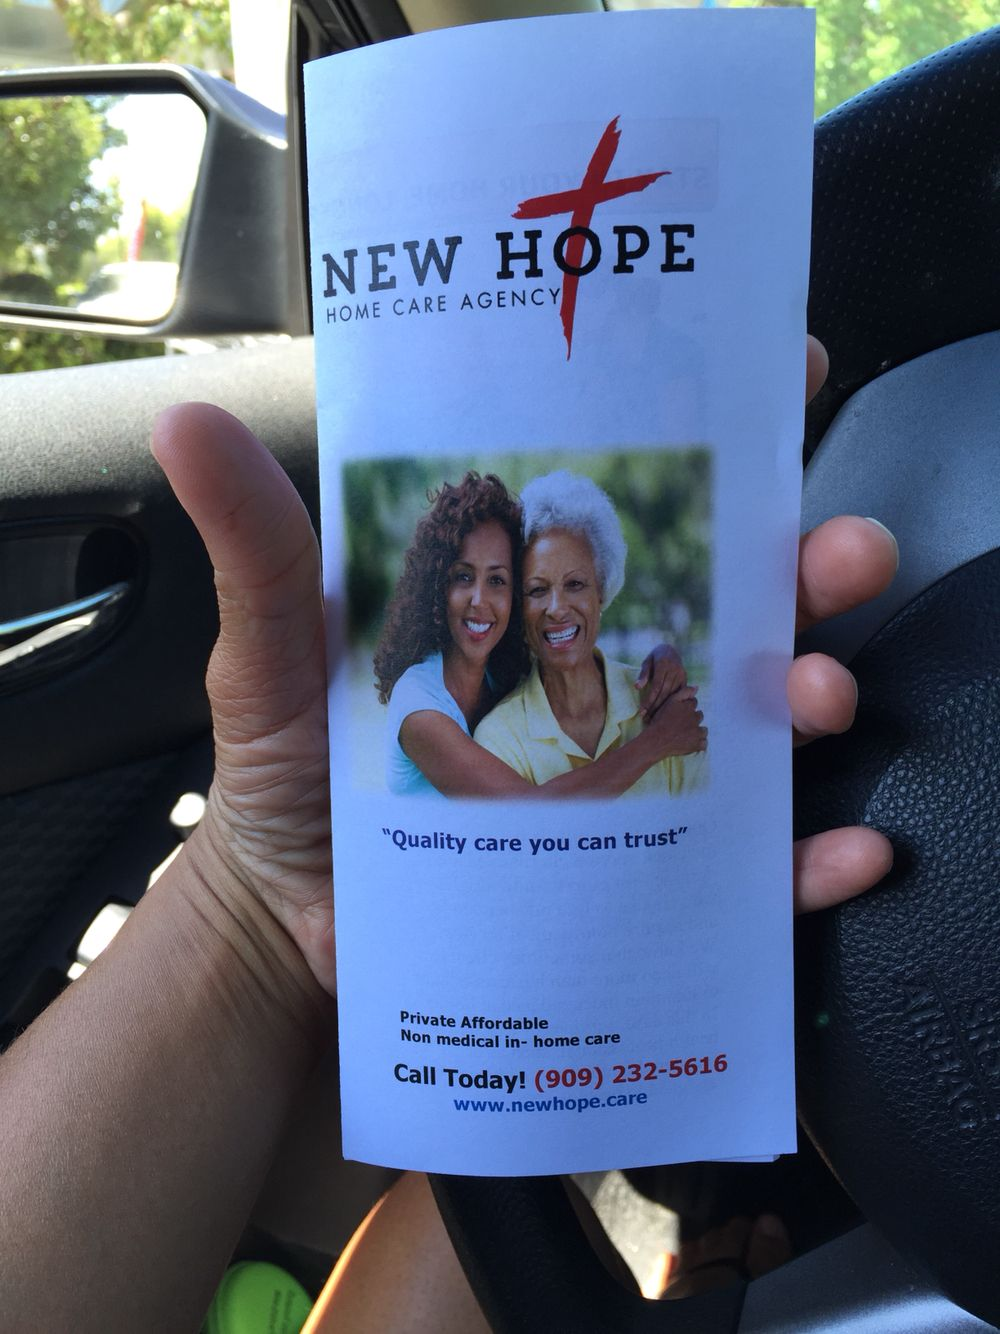 new hope (With images) Home care agency